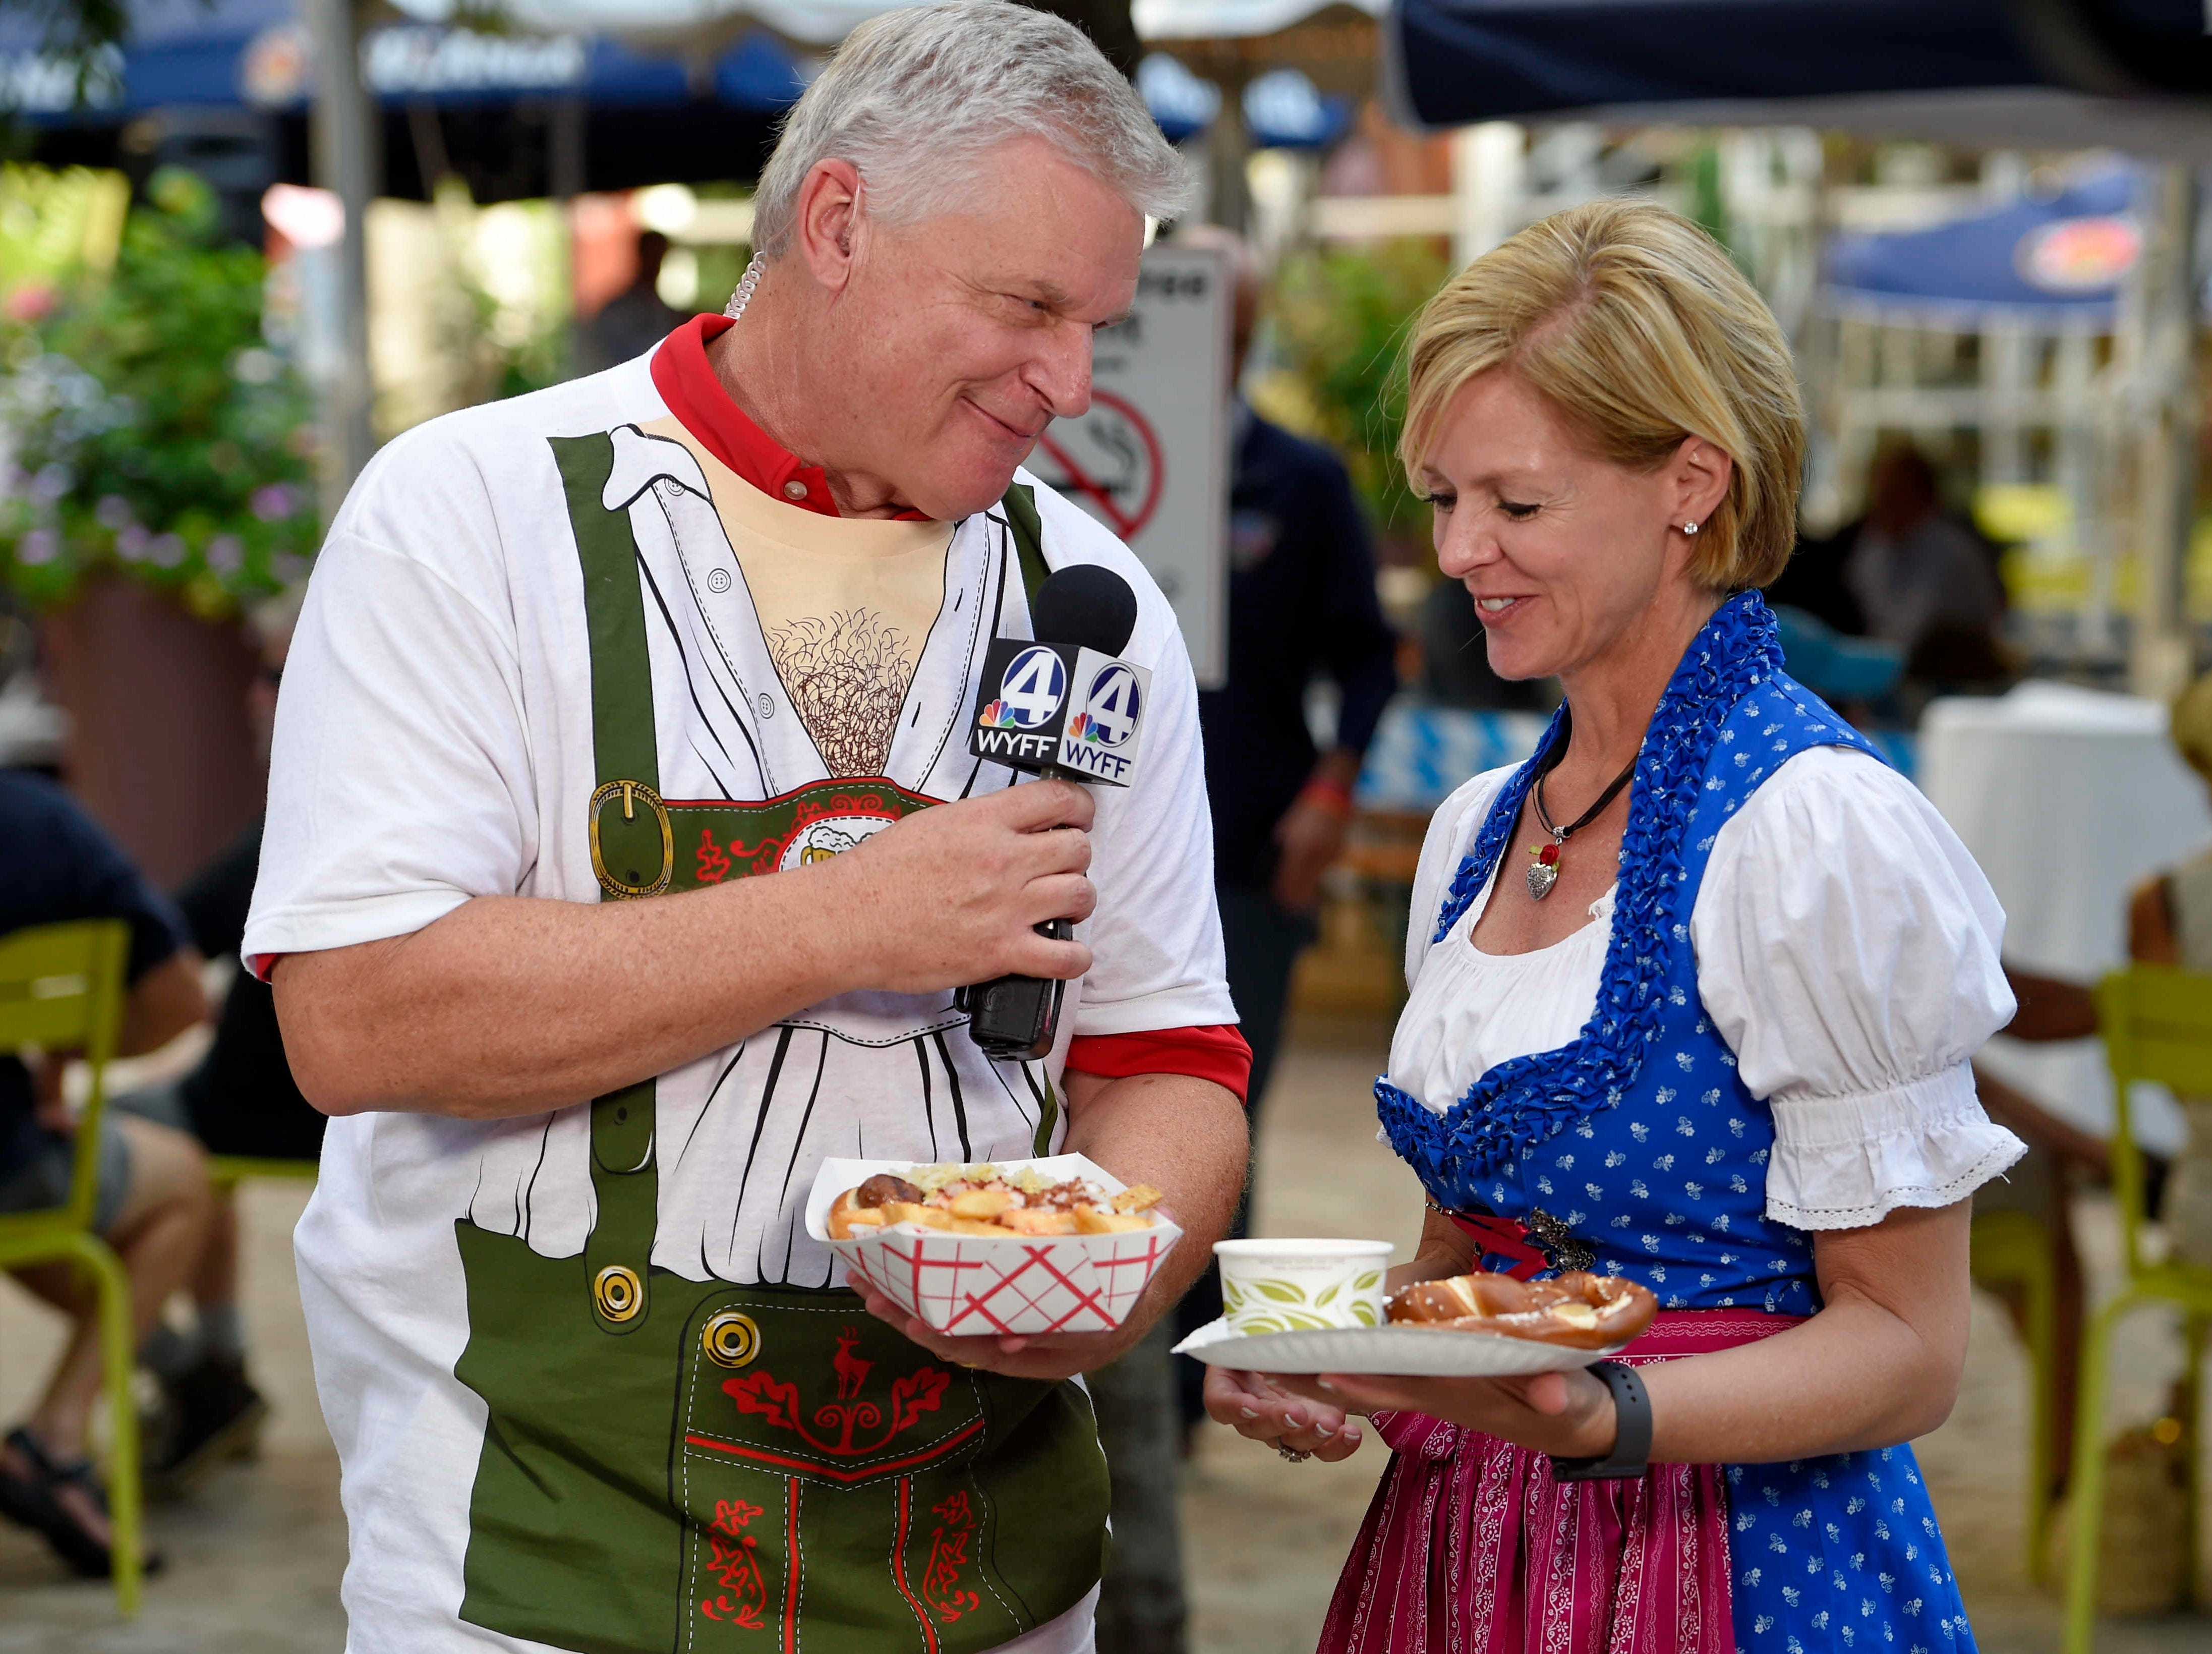 Heather Meadors of Auro Hotels, presents WYFF's John Cessarich some German food during which kicked off at NOMA Square in downtown Greenville Thursday, Oct. 4,  2018.